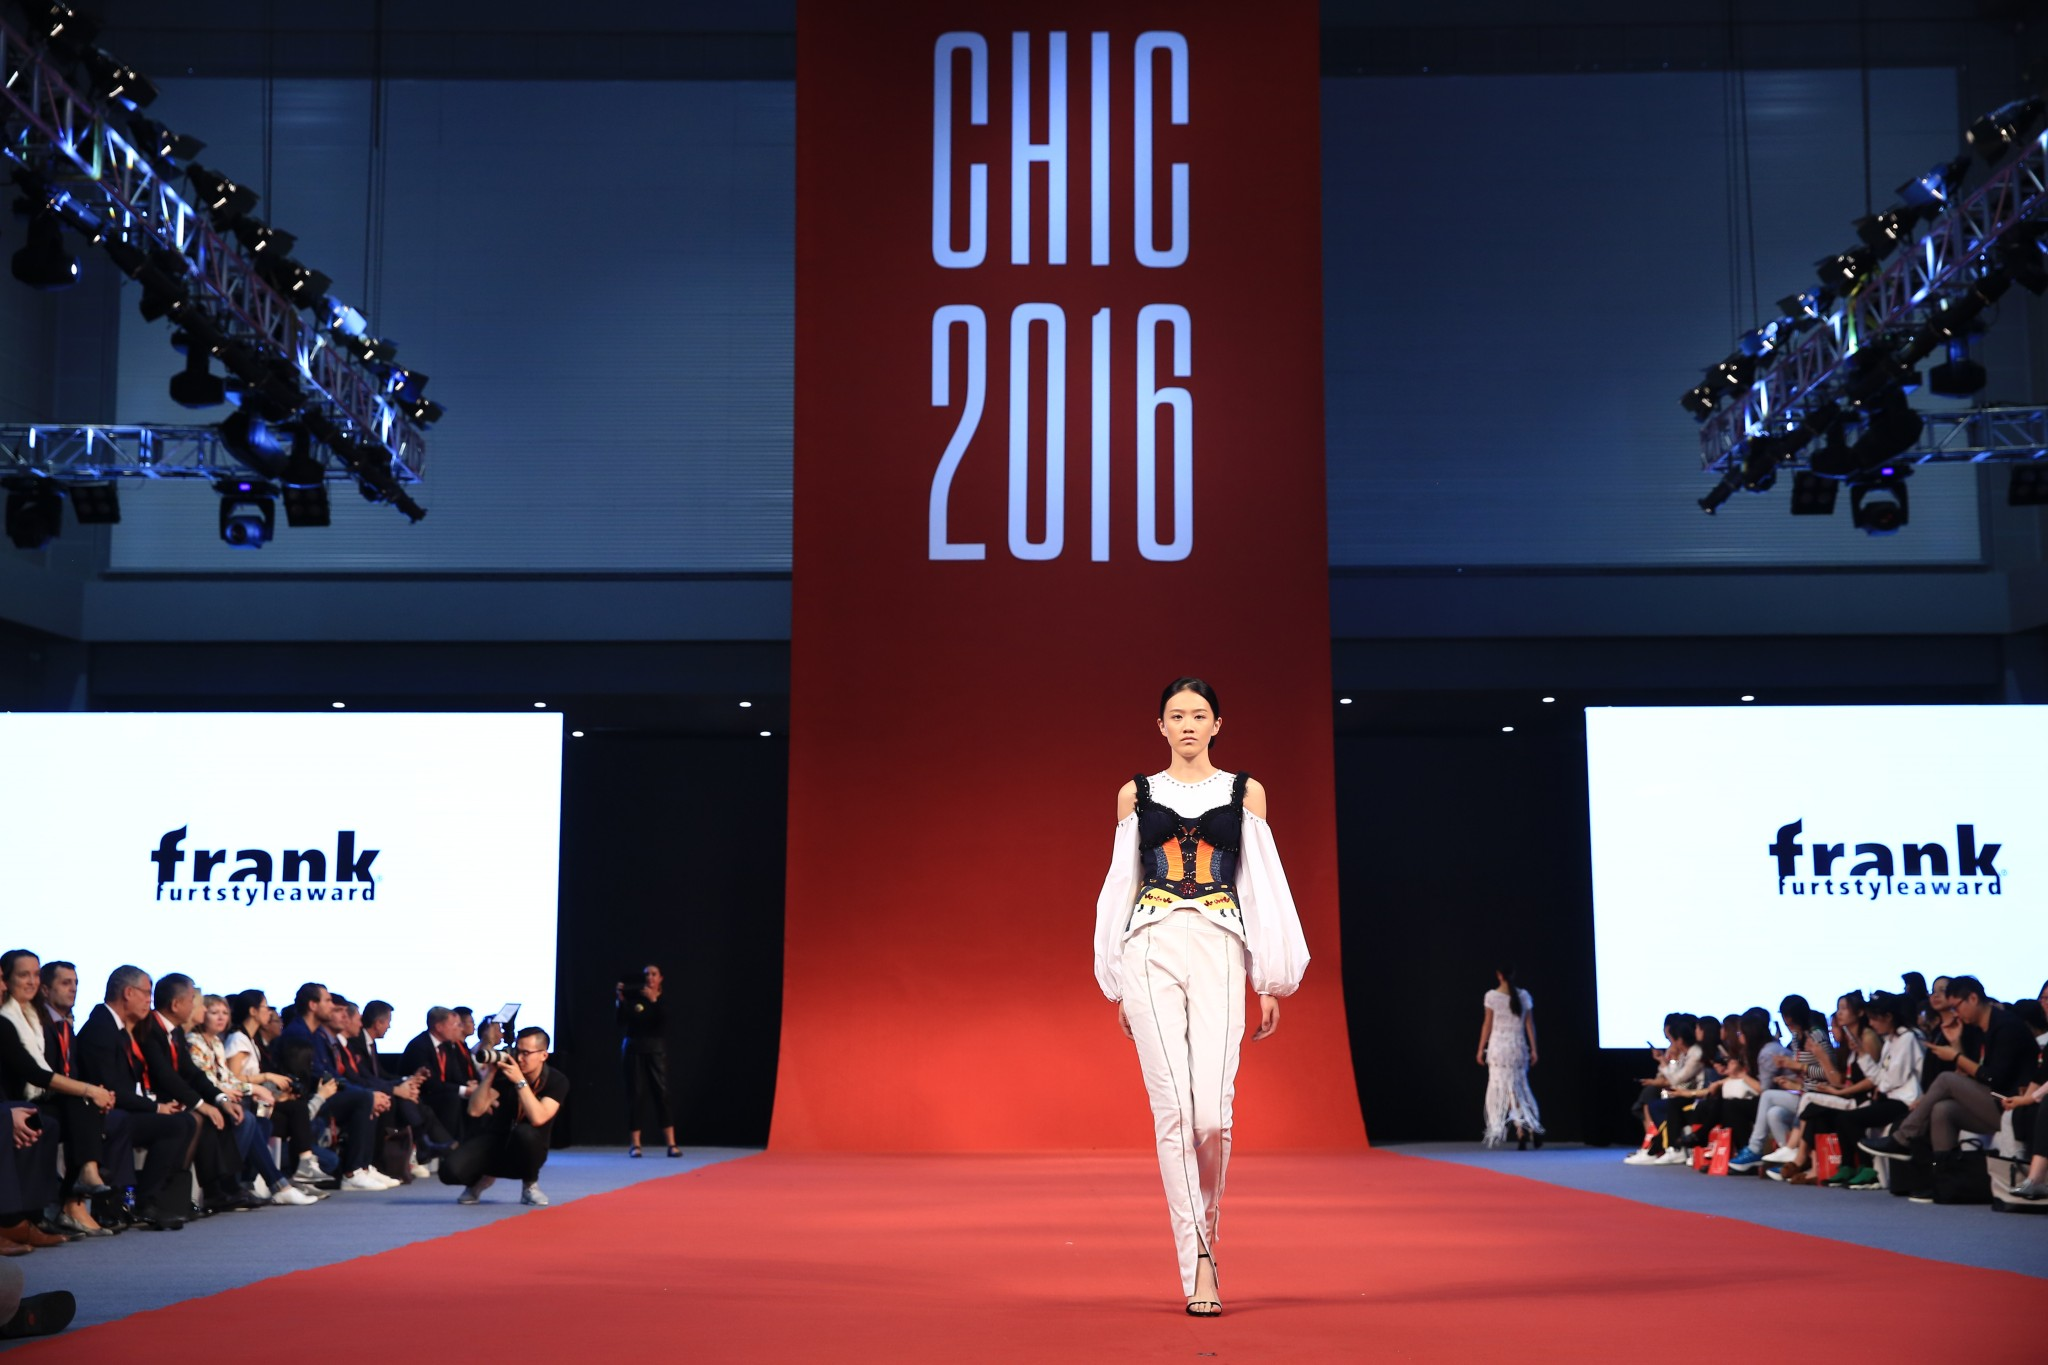 FRANKfurtstyleaward at CHIC